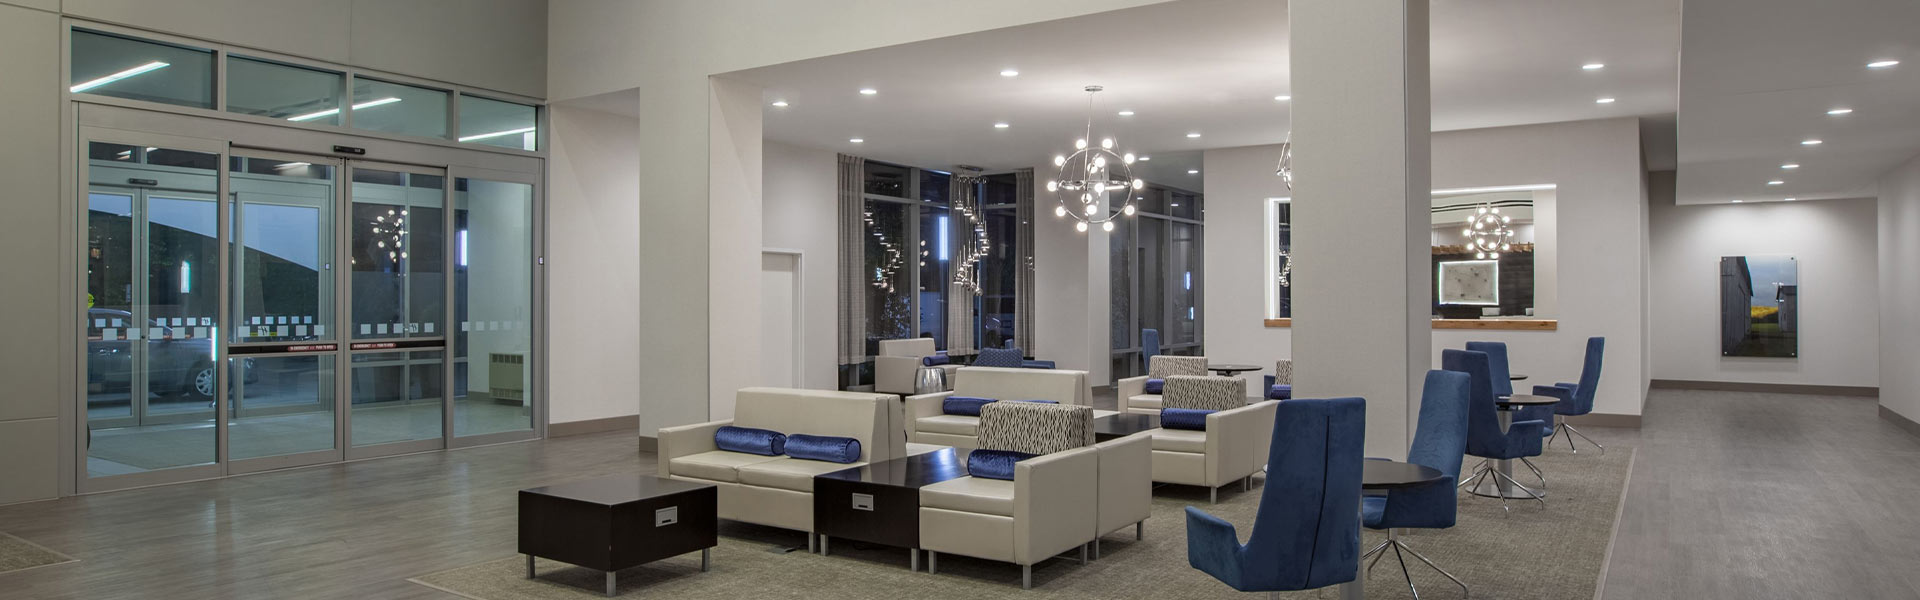 Holiday Inn Cleveland Clinic Ohio - About Us